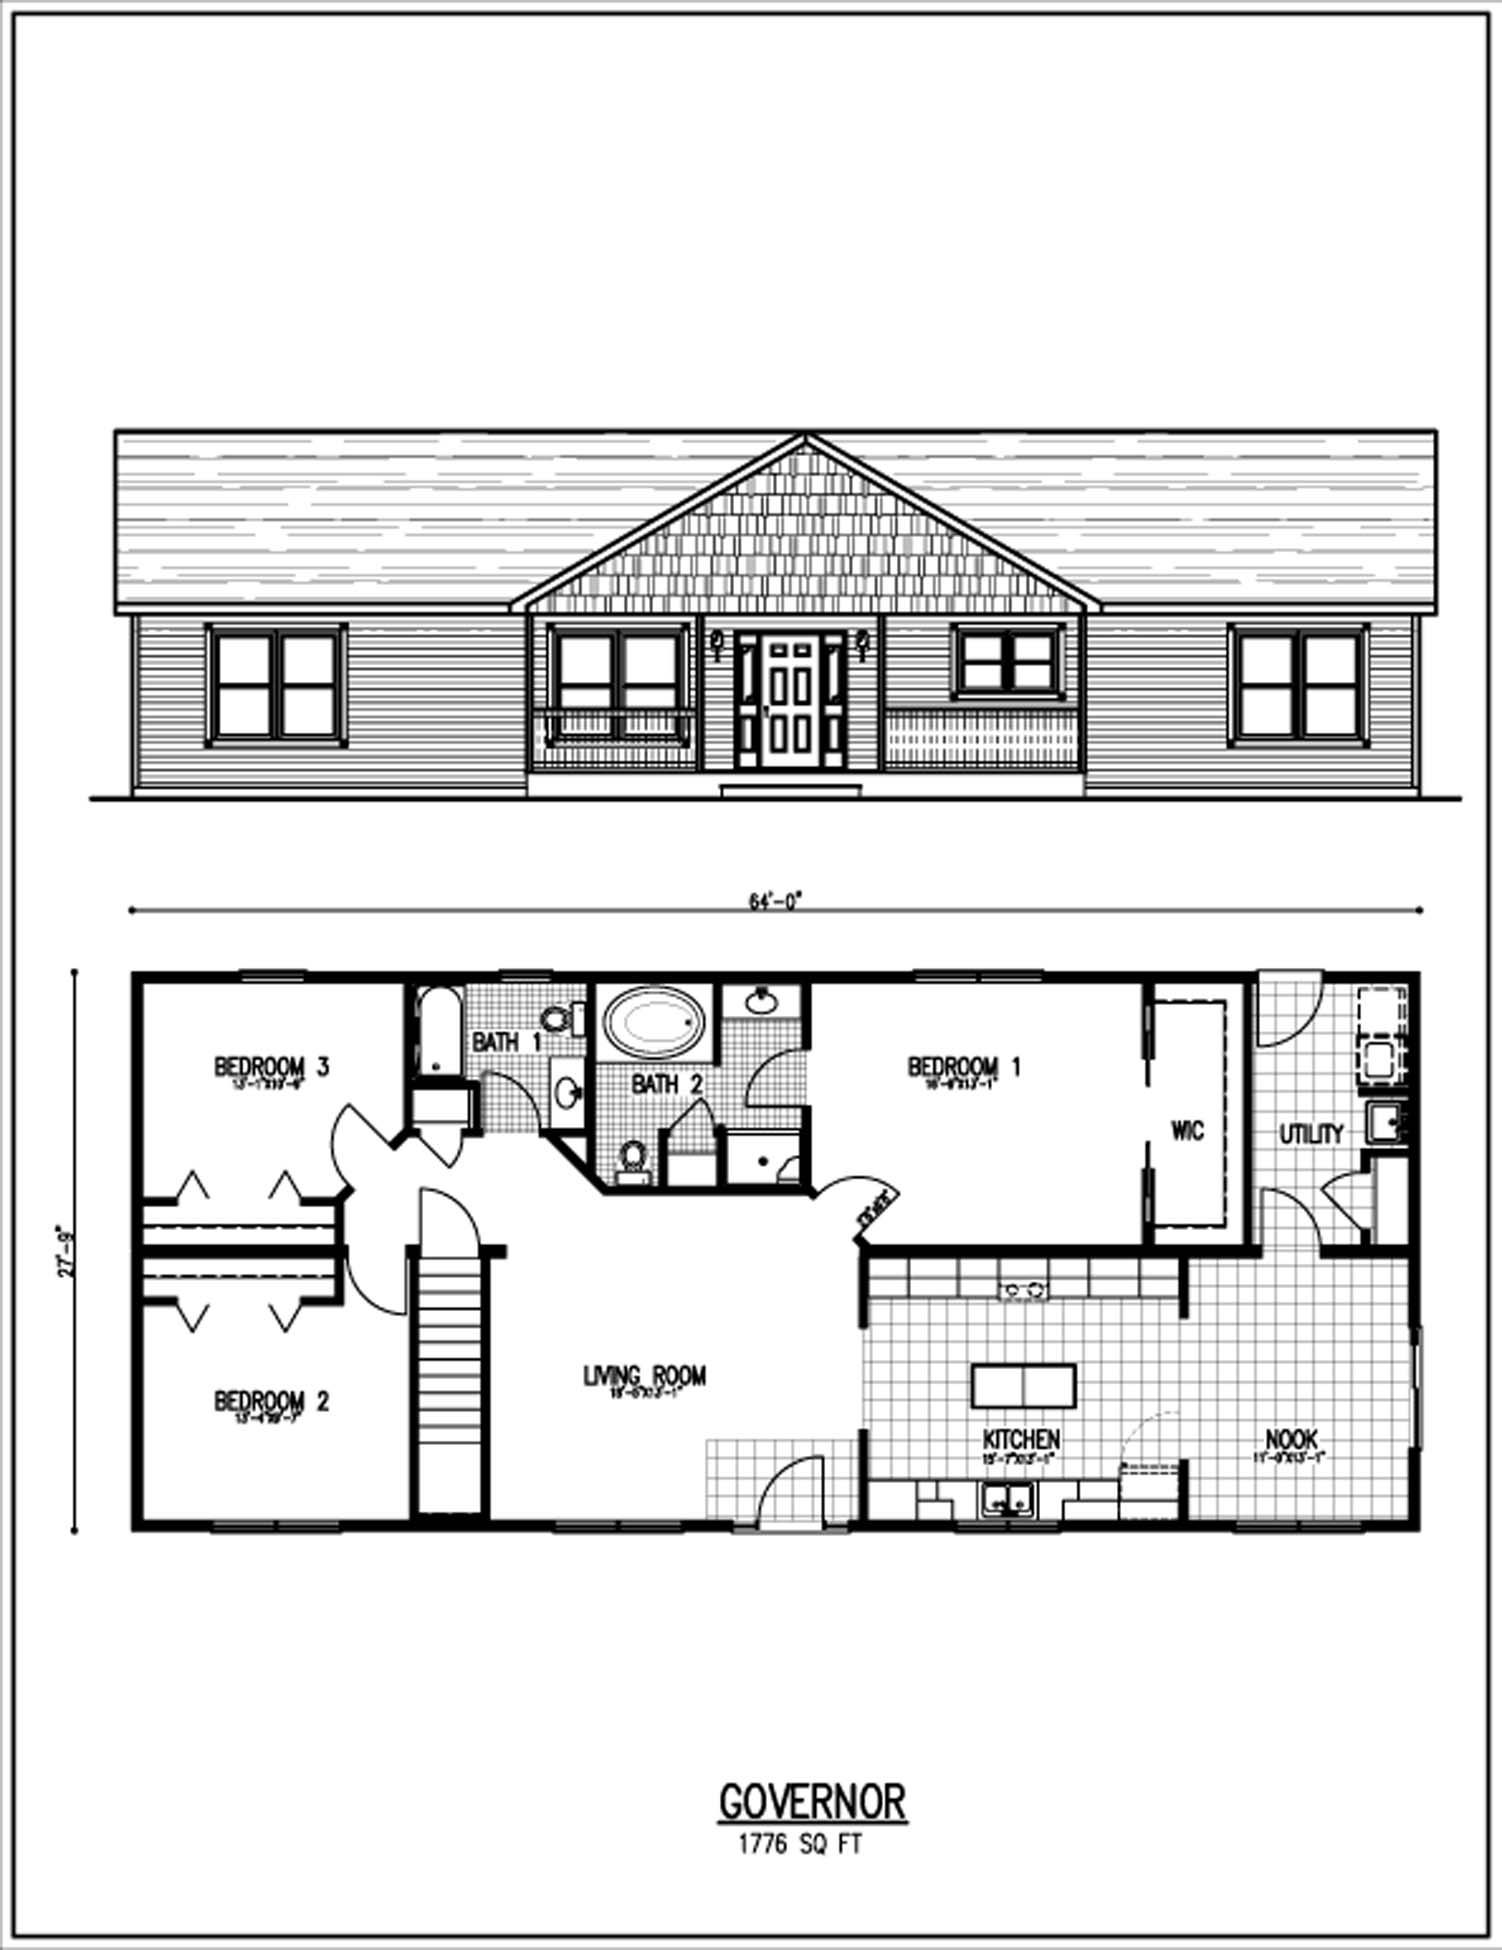 Floor plans by shawam082498 on pinterest floor plans 30x60 house floor plans